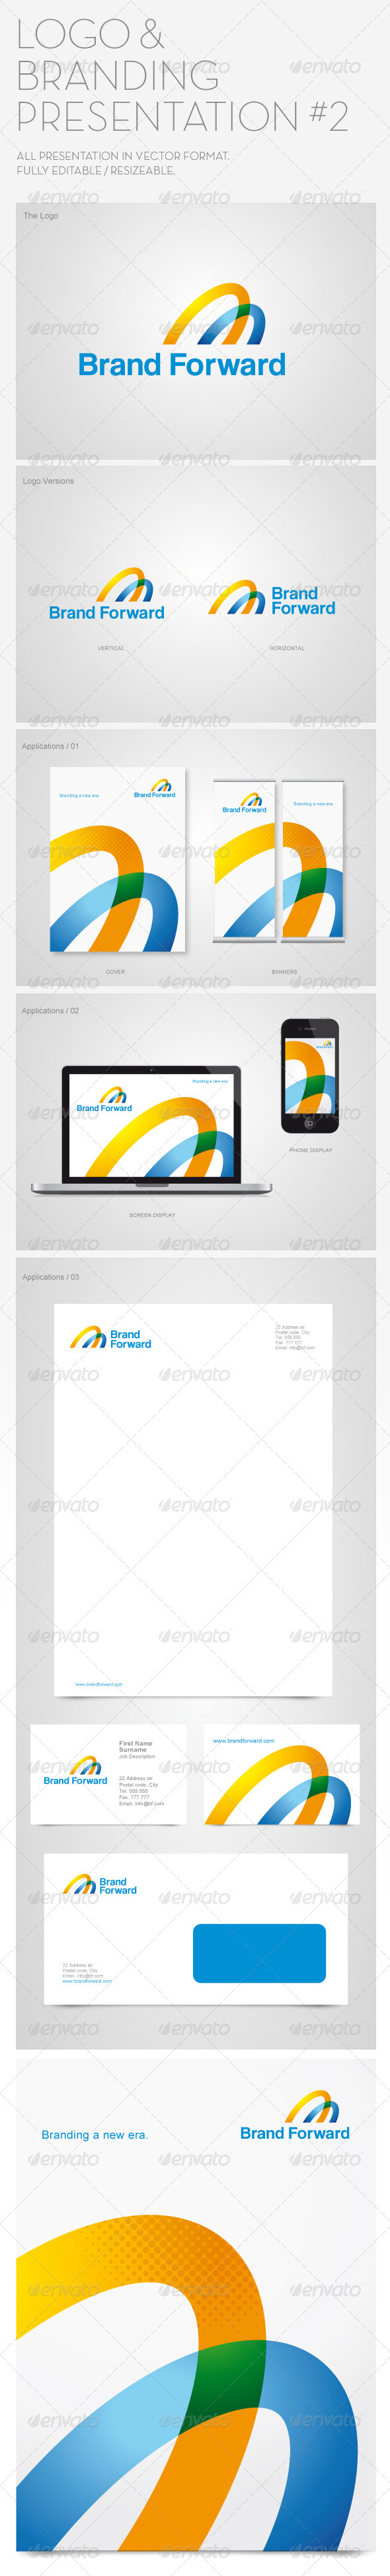 logo & branding presentation #2 #graphicriver logo template, Powerpoint templates